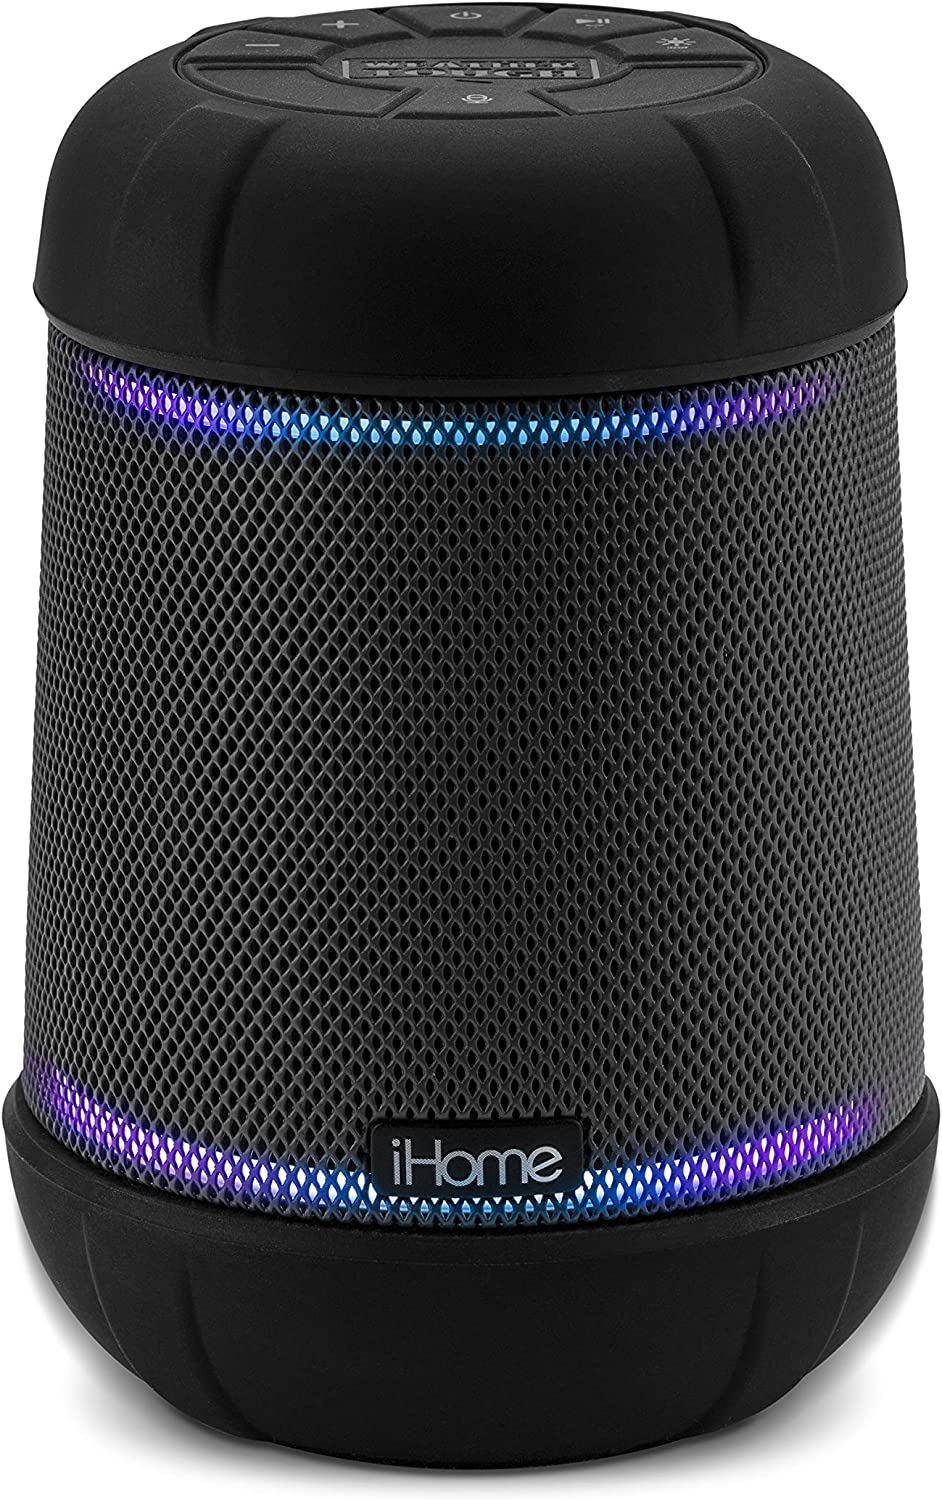 iHome iBT10 Smart Bluetooth Speaker - With Alexa Built-In and Color  Changing LED Lights - Perfect Portable Audio Device for Parties, Outdoors,  and